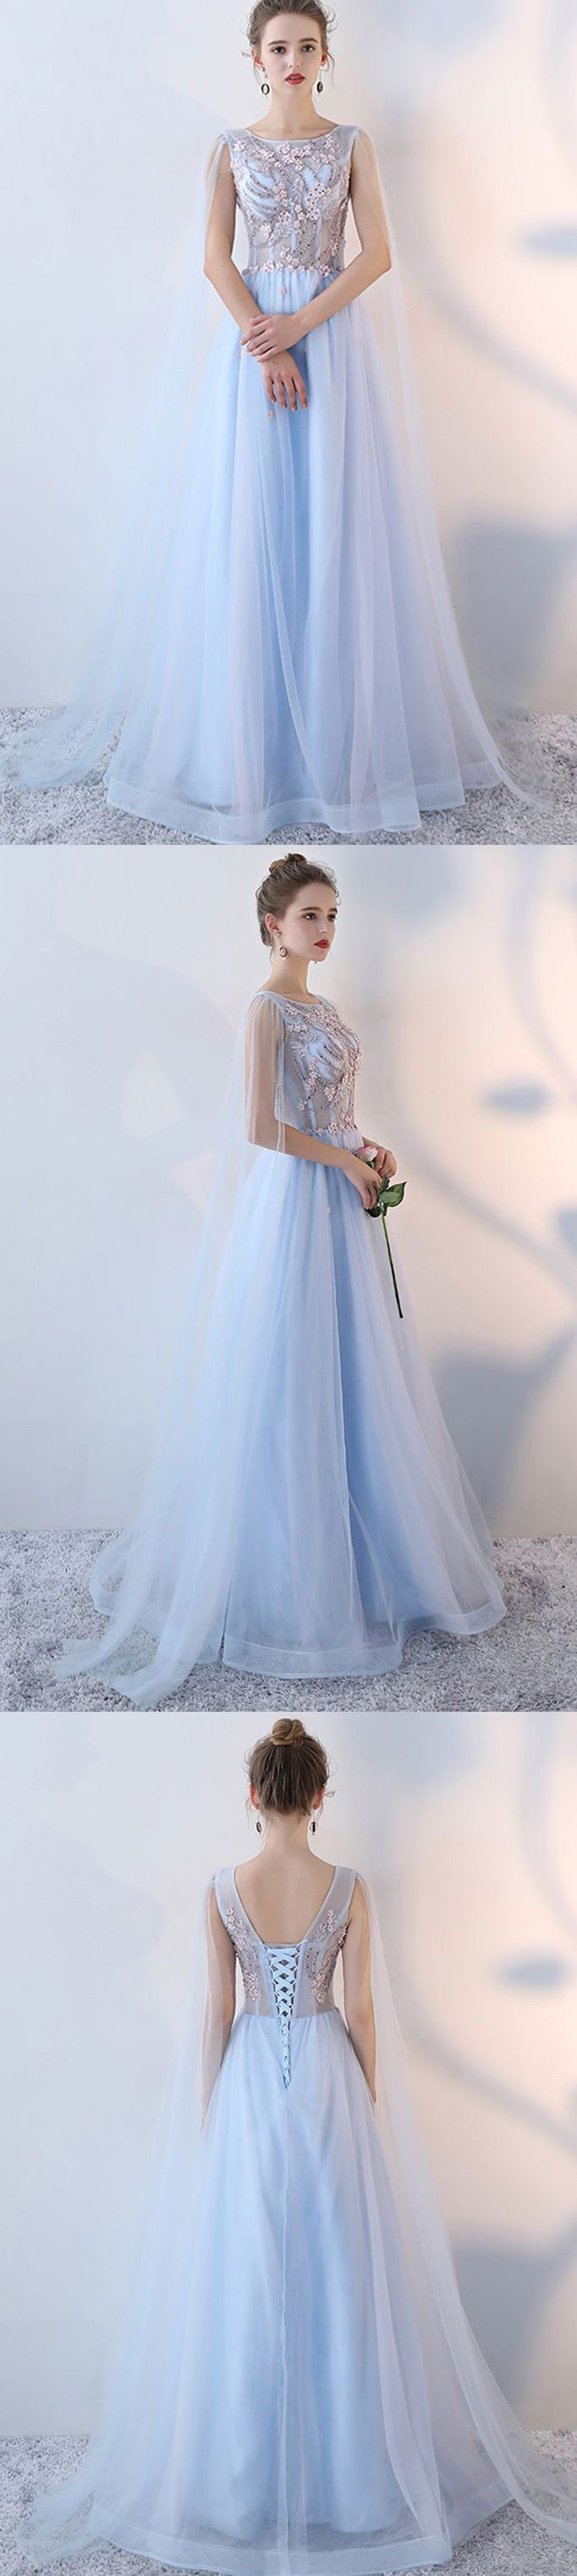 Lace up long light blue tulle prom dress with beaded flowers